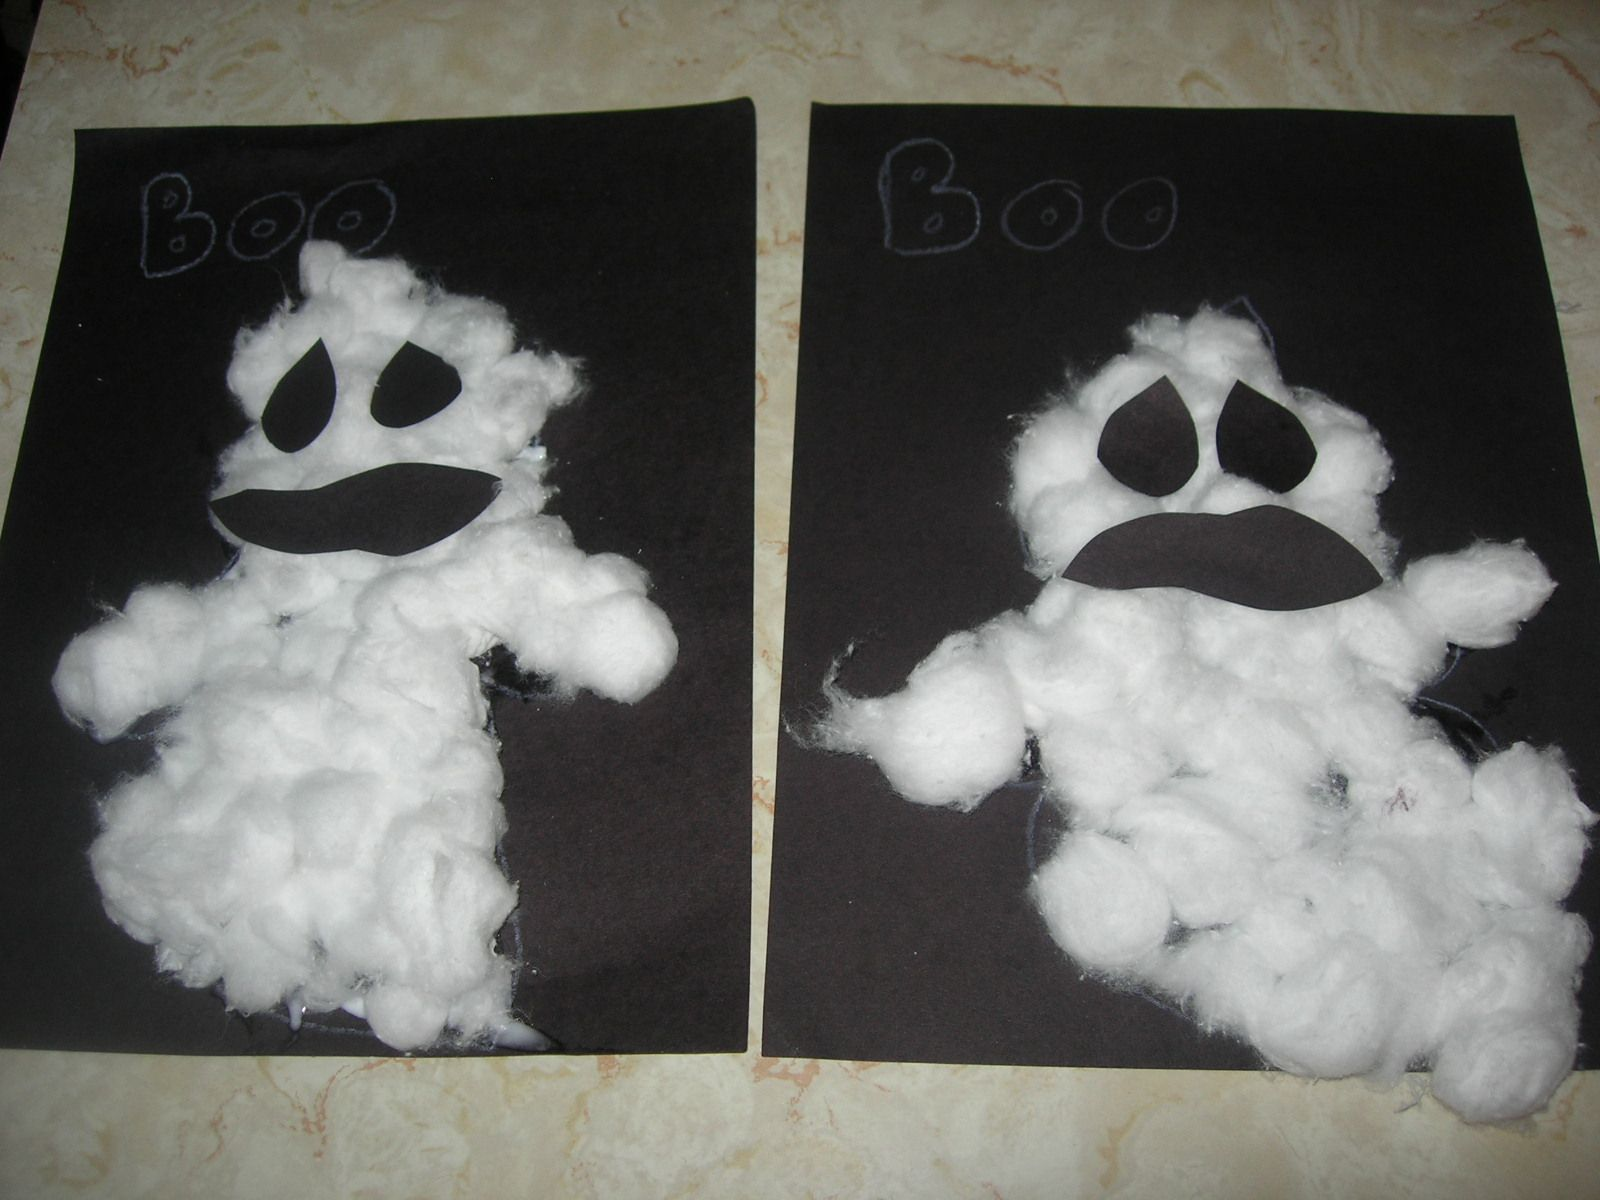 preschool crafts for kids easy halloween cotton ball ghosts craft or this would be less messy - Halloween Crafts For Preschoolers Easy